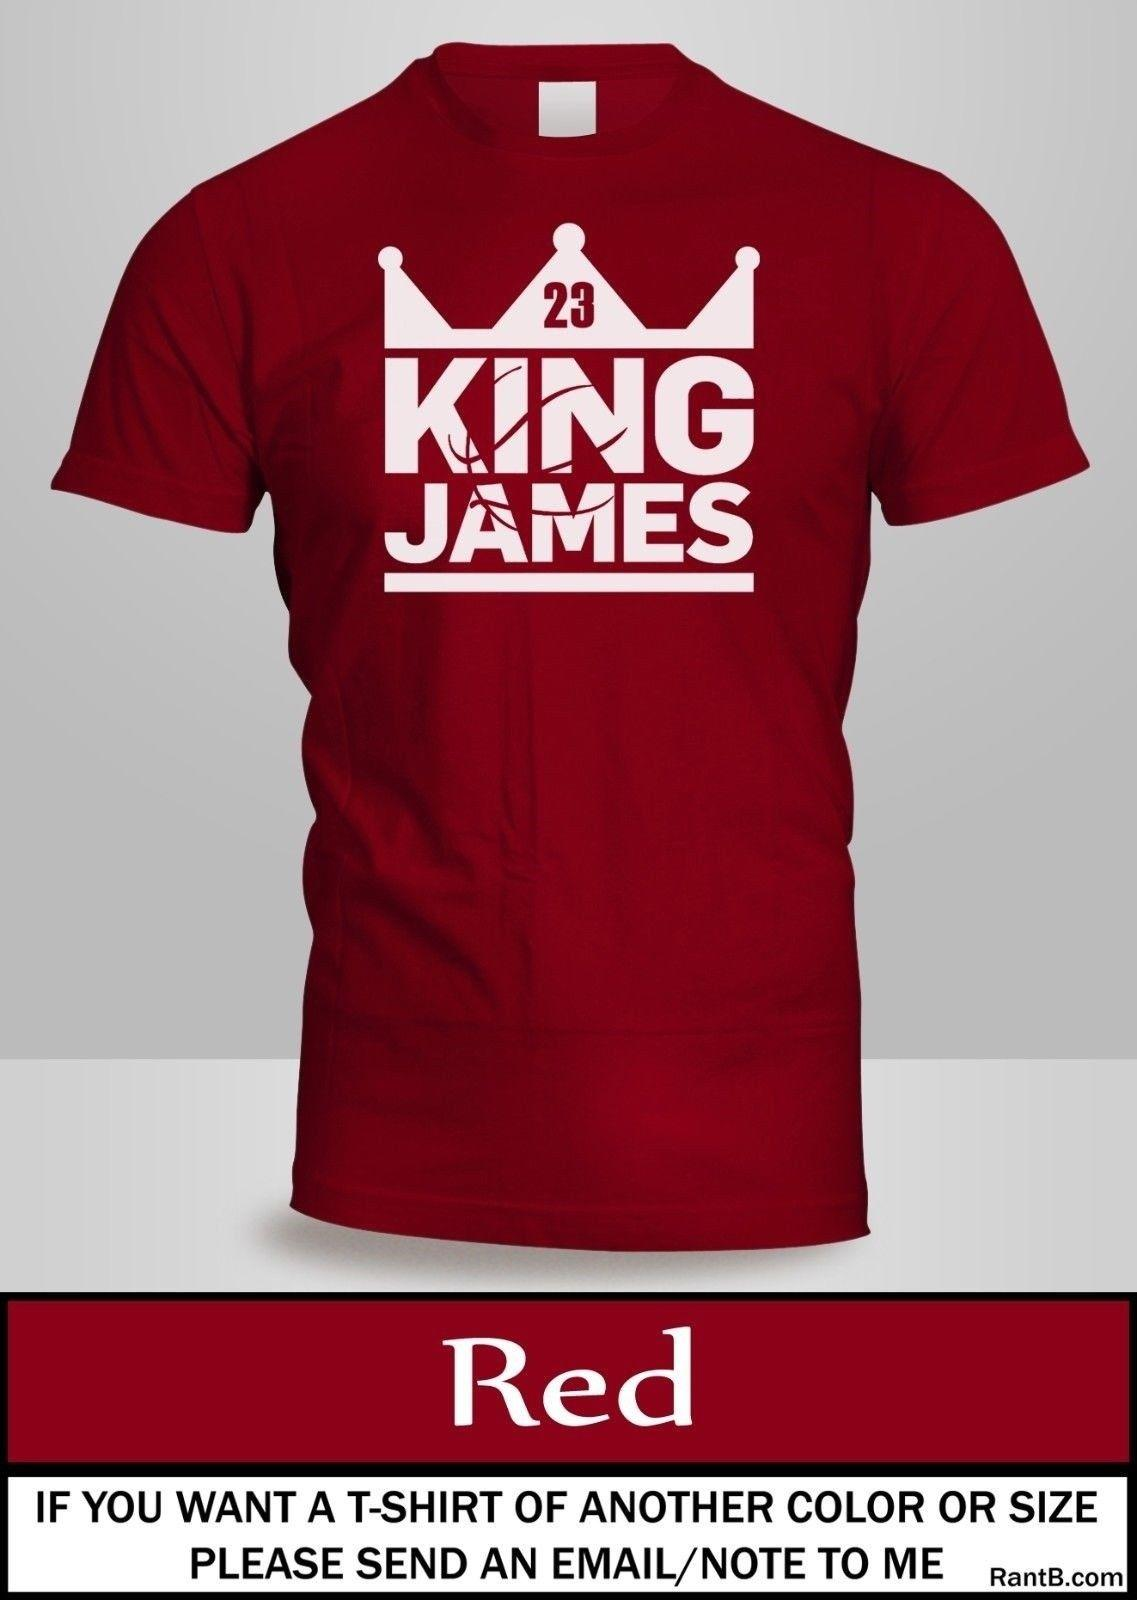 23f309f9fe9e KING LEBRON JAMES BASKETBALL GRAPHIC T Shirt Mens Top Red Colour Shirt  2Funny Unisex Casual Tshirt Top Designs For T Shirts Awesome T Shirt From  Lazyfruit, ...